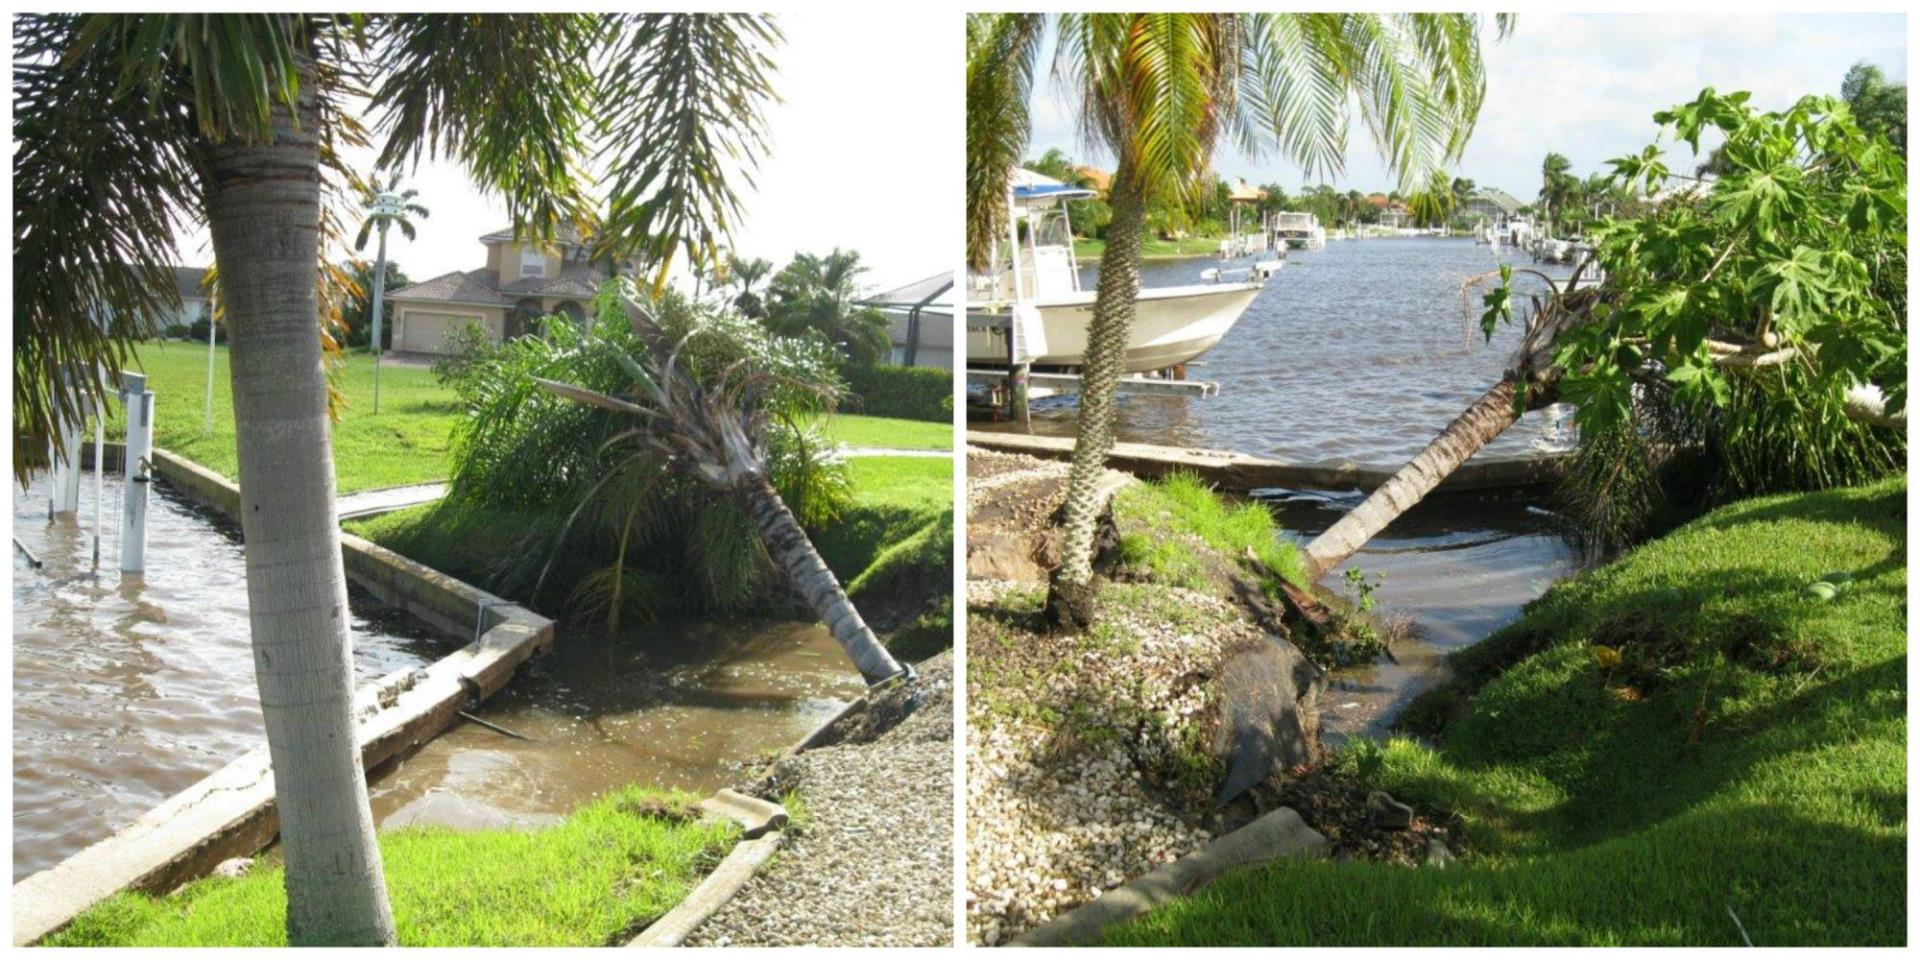 IRMA Seawall Damage